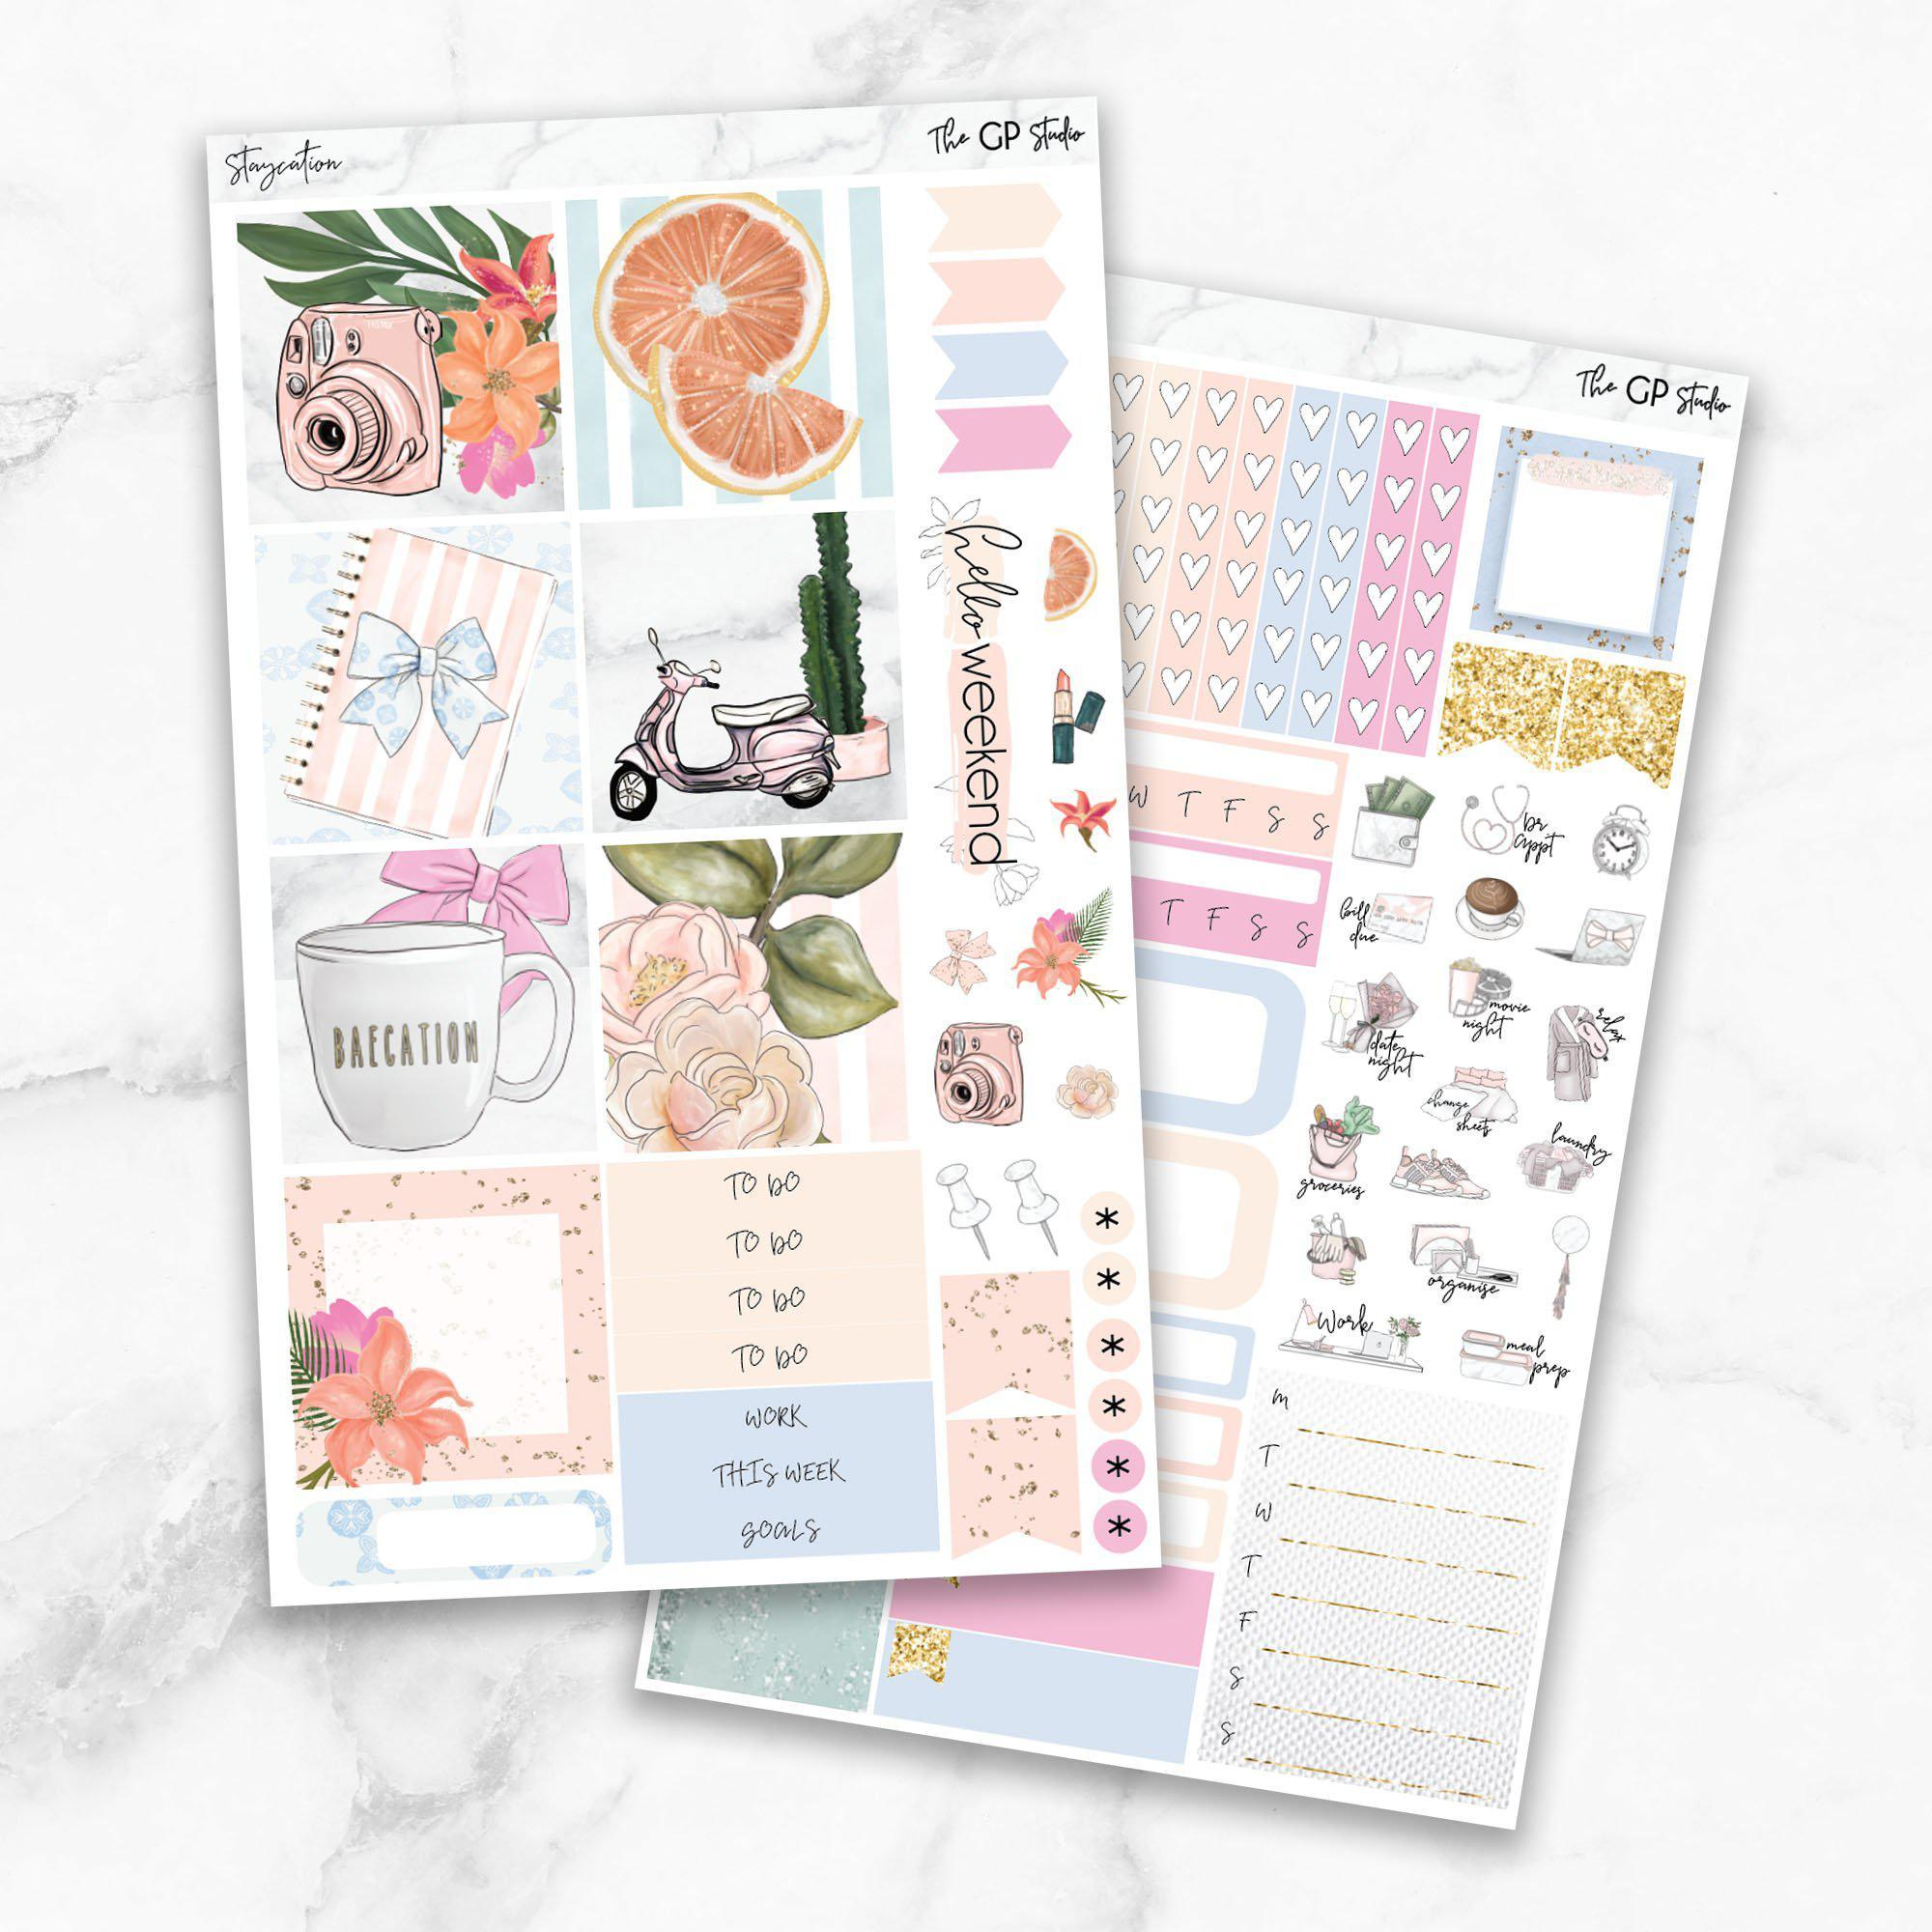 STAYCATION Mini Size Planner Sticker Kit-The GP Studio